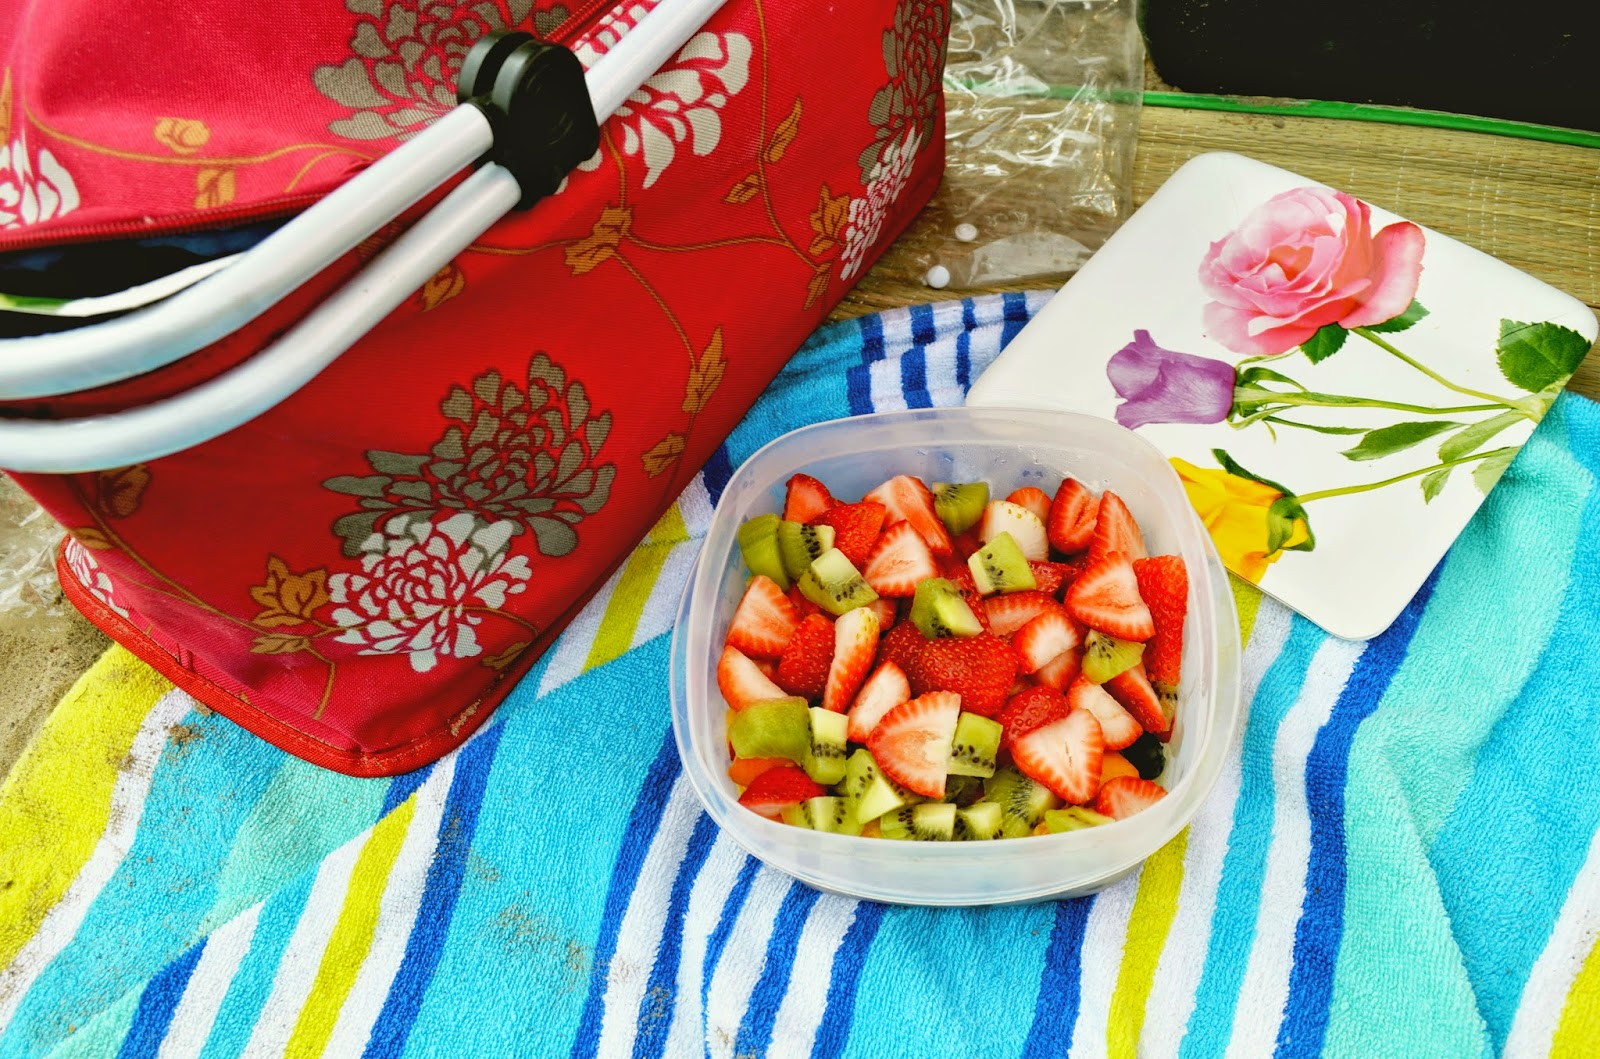 By The Time We Got Our Stuff To Beach I Didnt Feel Much Like Taking Pictures Of Food Snapped This One Shot Fruit Salad Prepared With